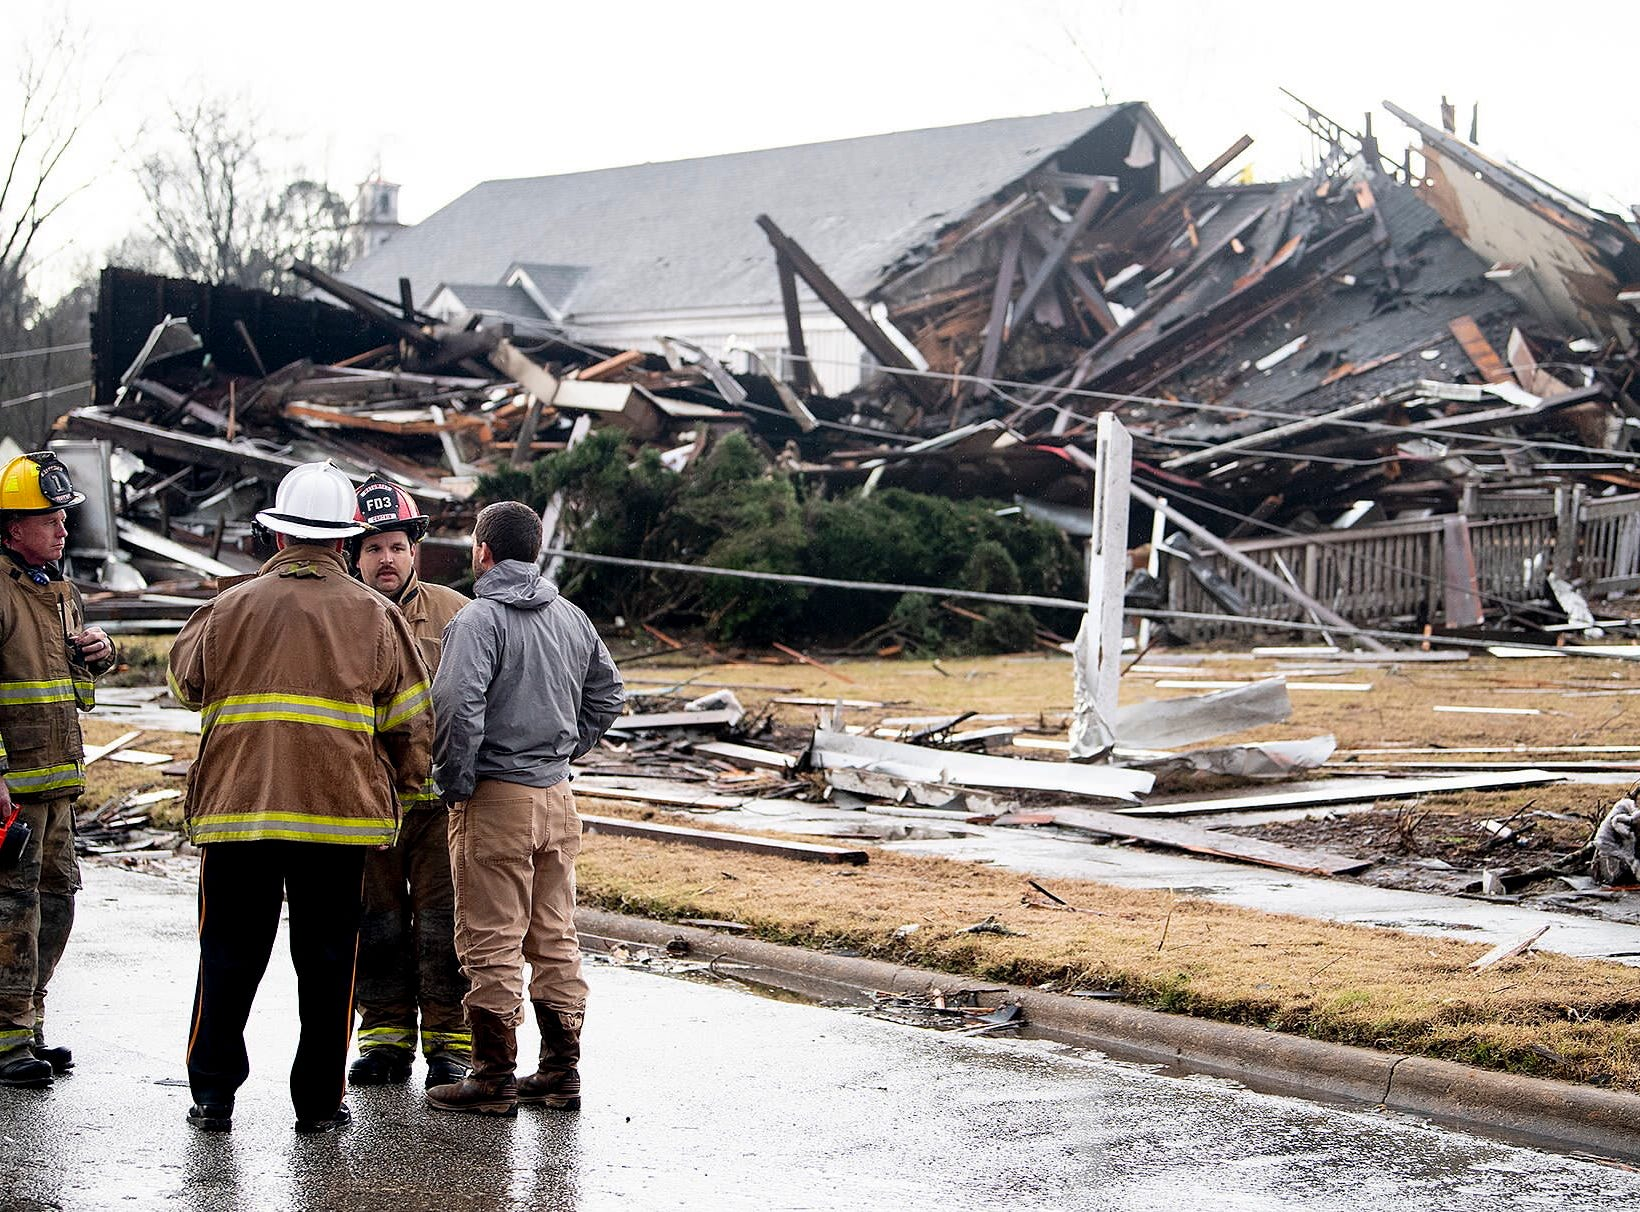 The First Presbyterian Church in the 100 block of West Bridge Street in Wetumpka after an apparent tornado struck the town on January 19, 2019